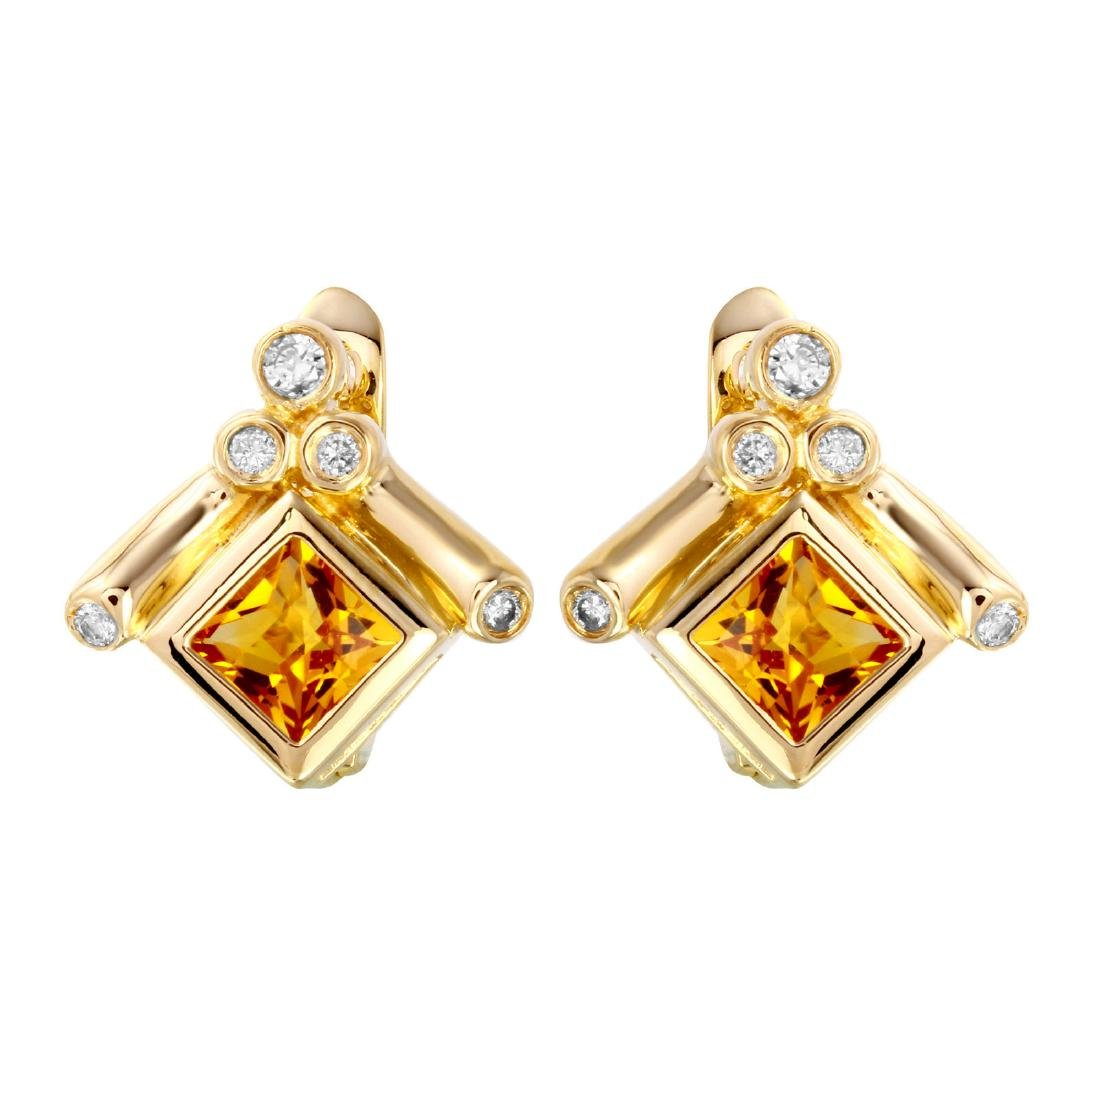 14KT Yellow Gold Citrine & Diamond Earrings - 3